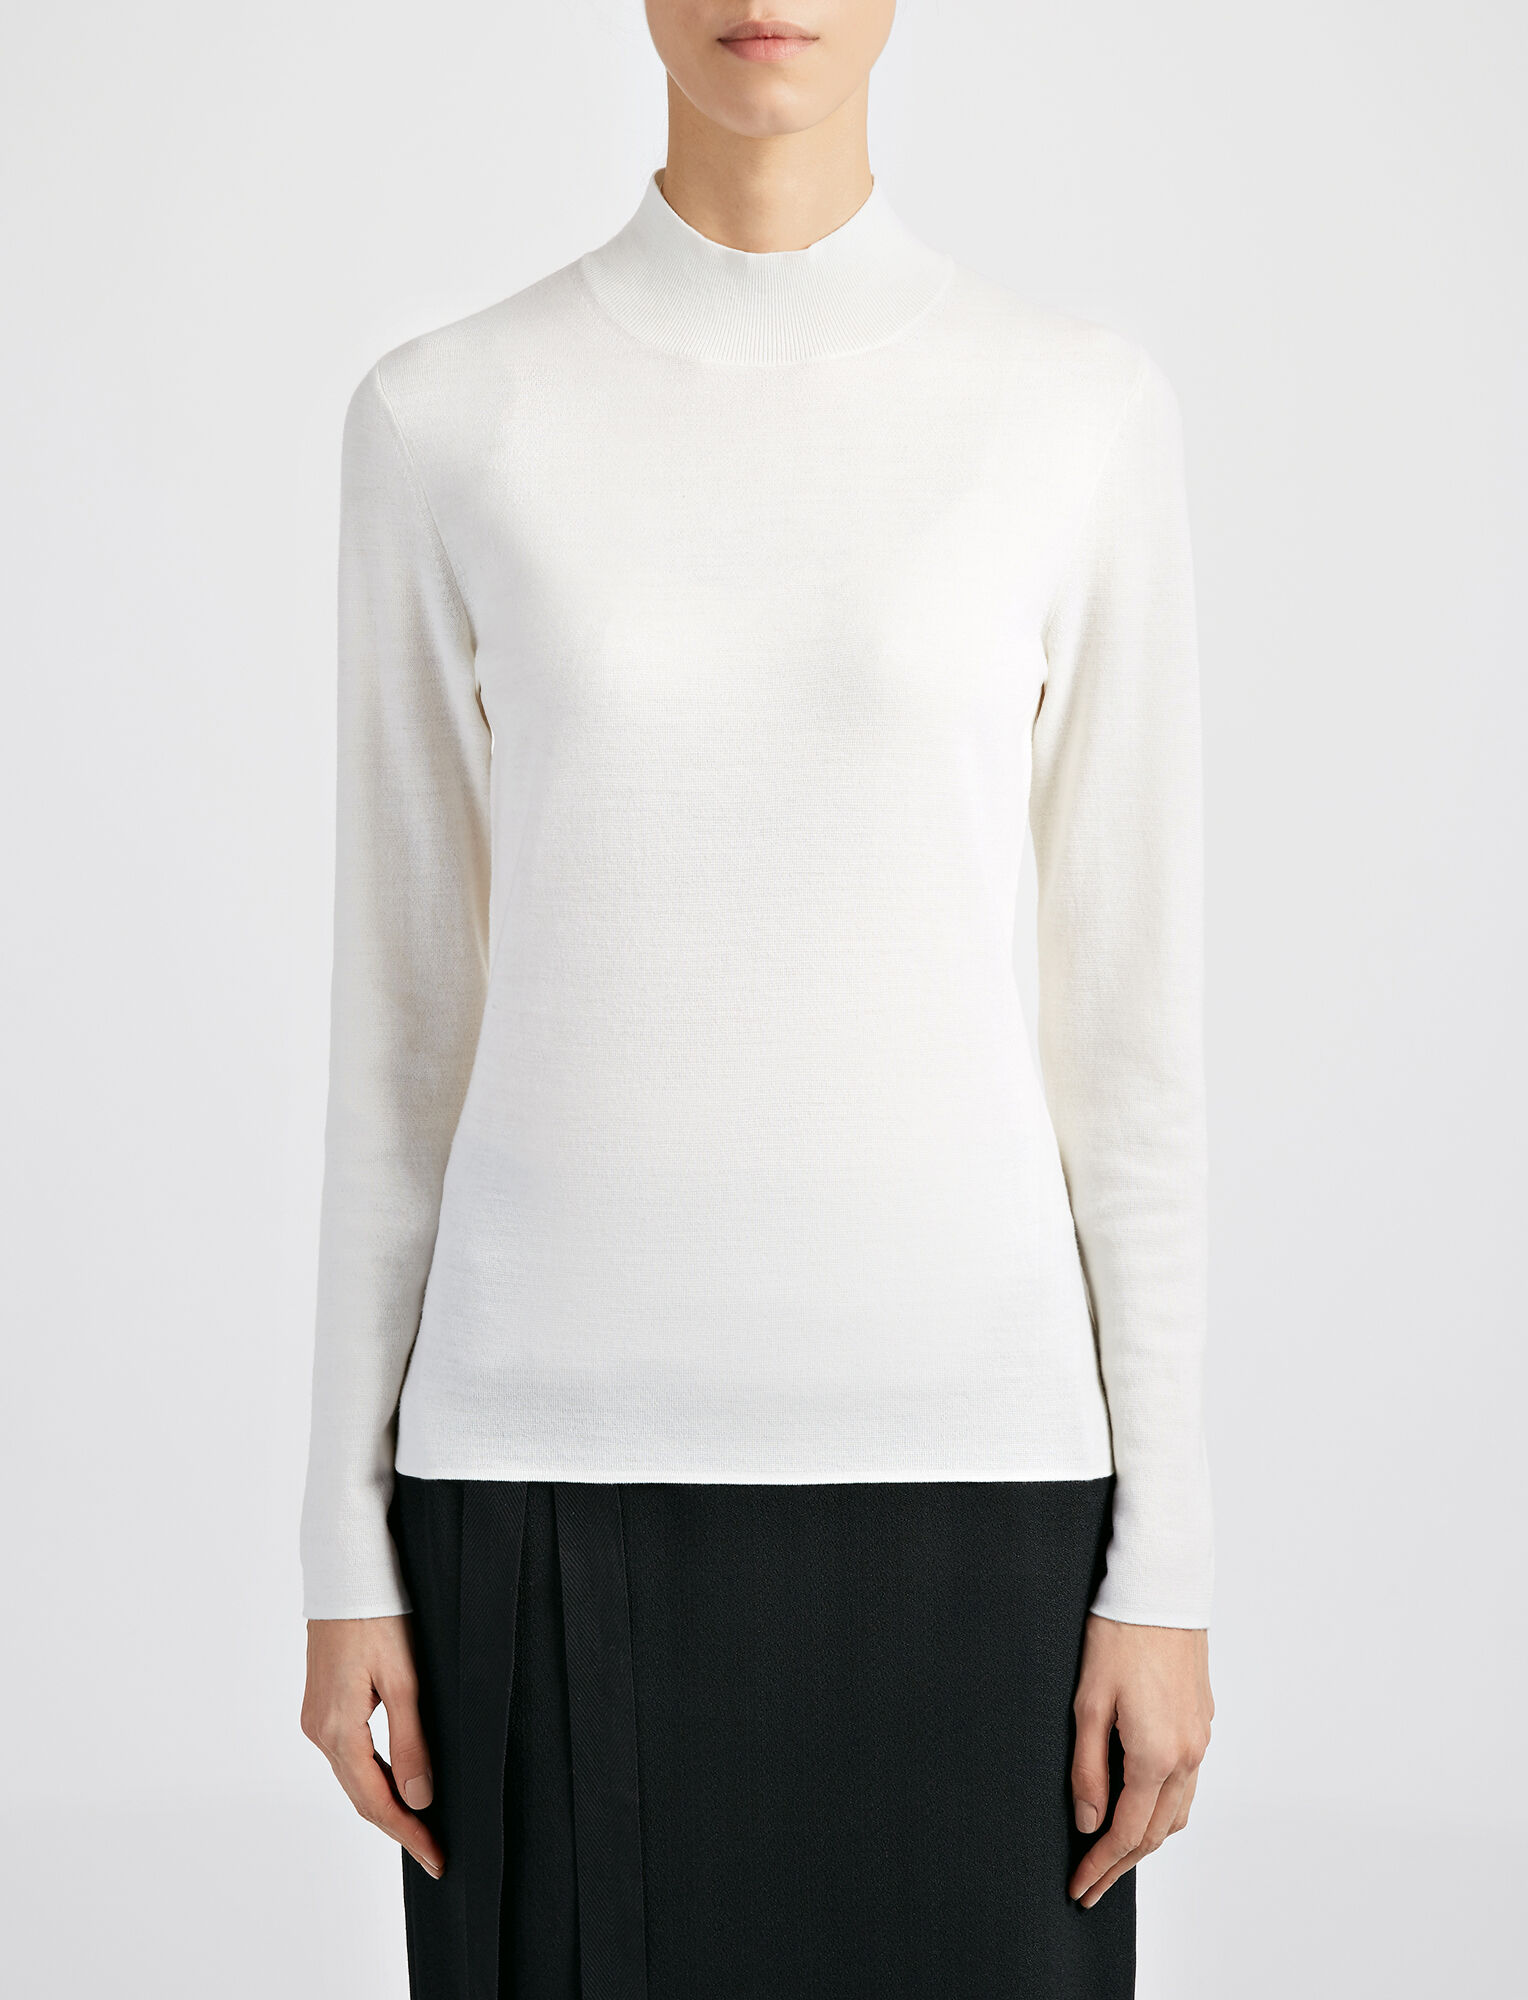 Joseph, Superfine Merinos High Neck Top, in BONE